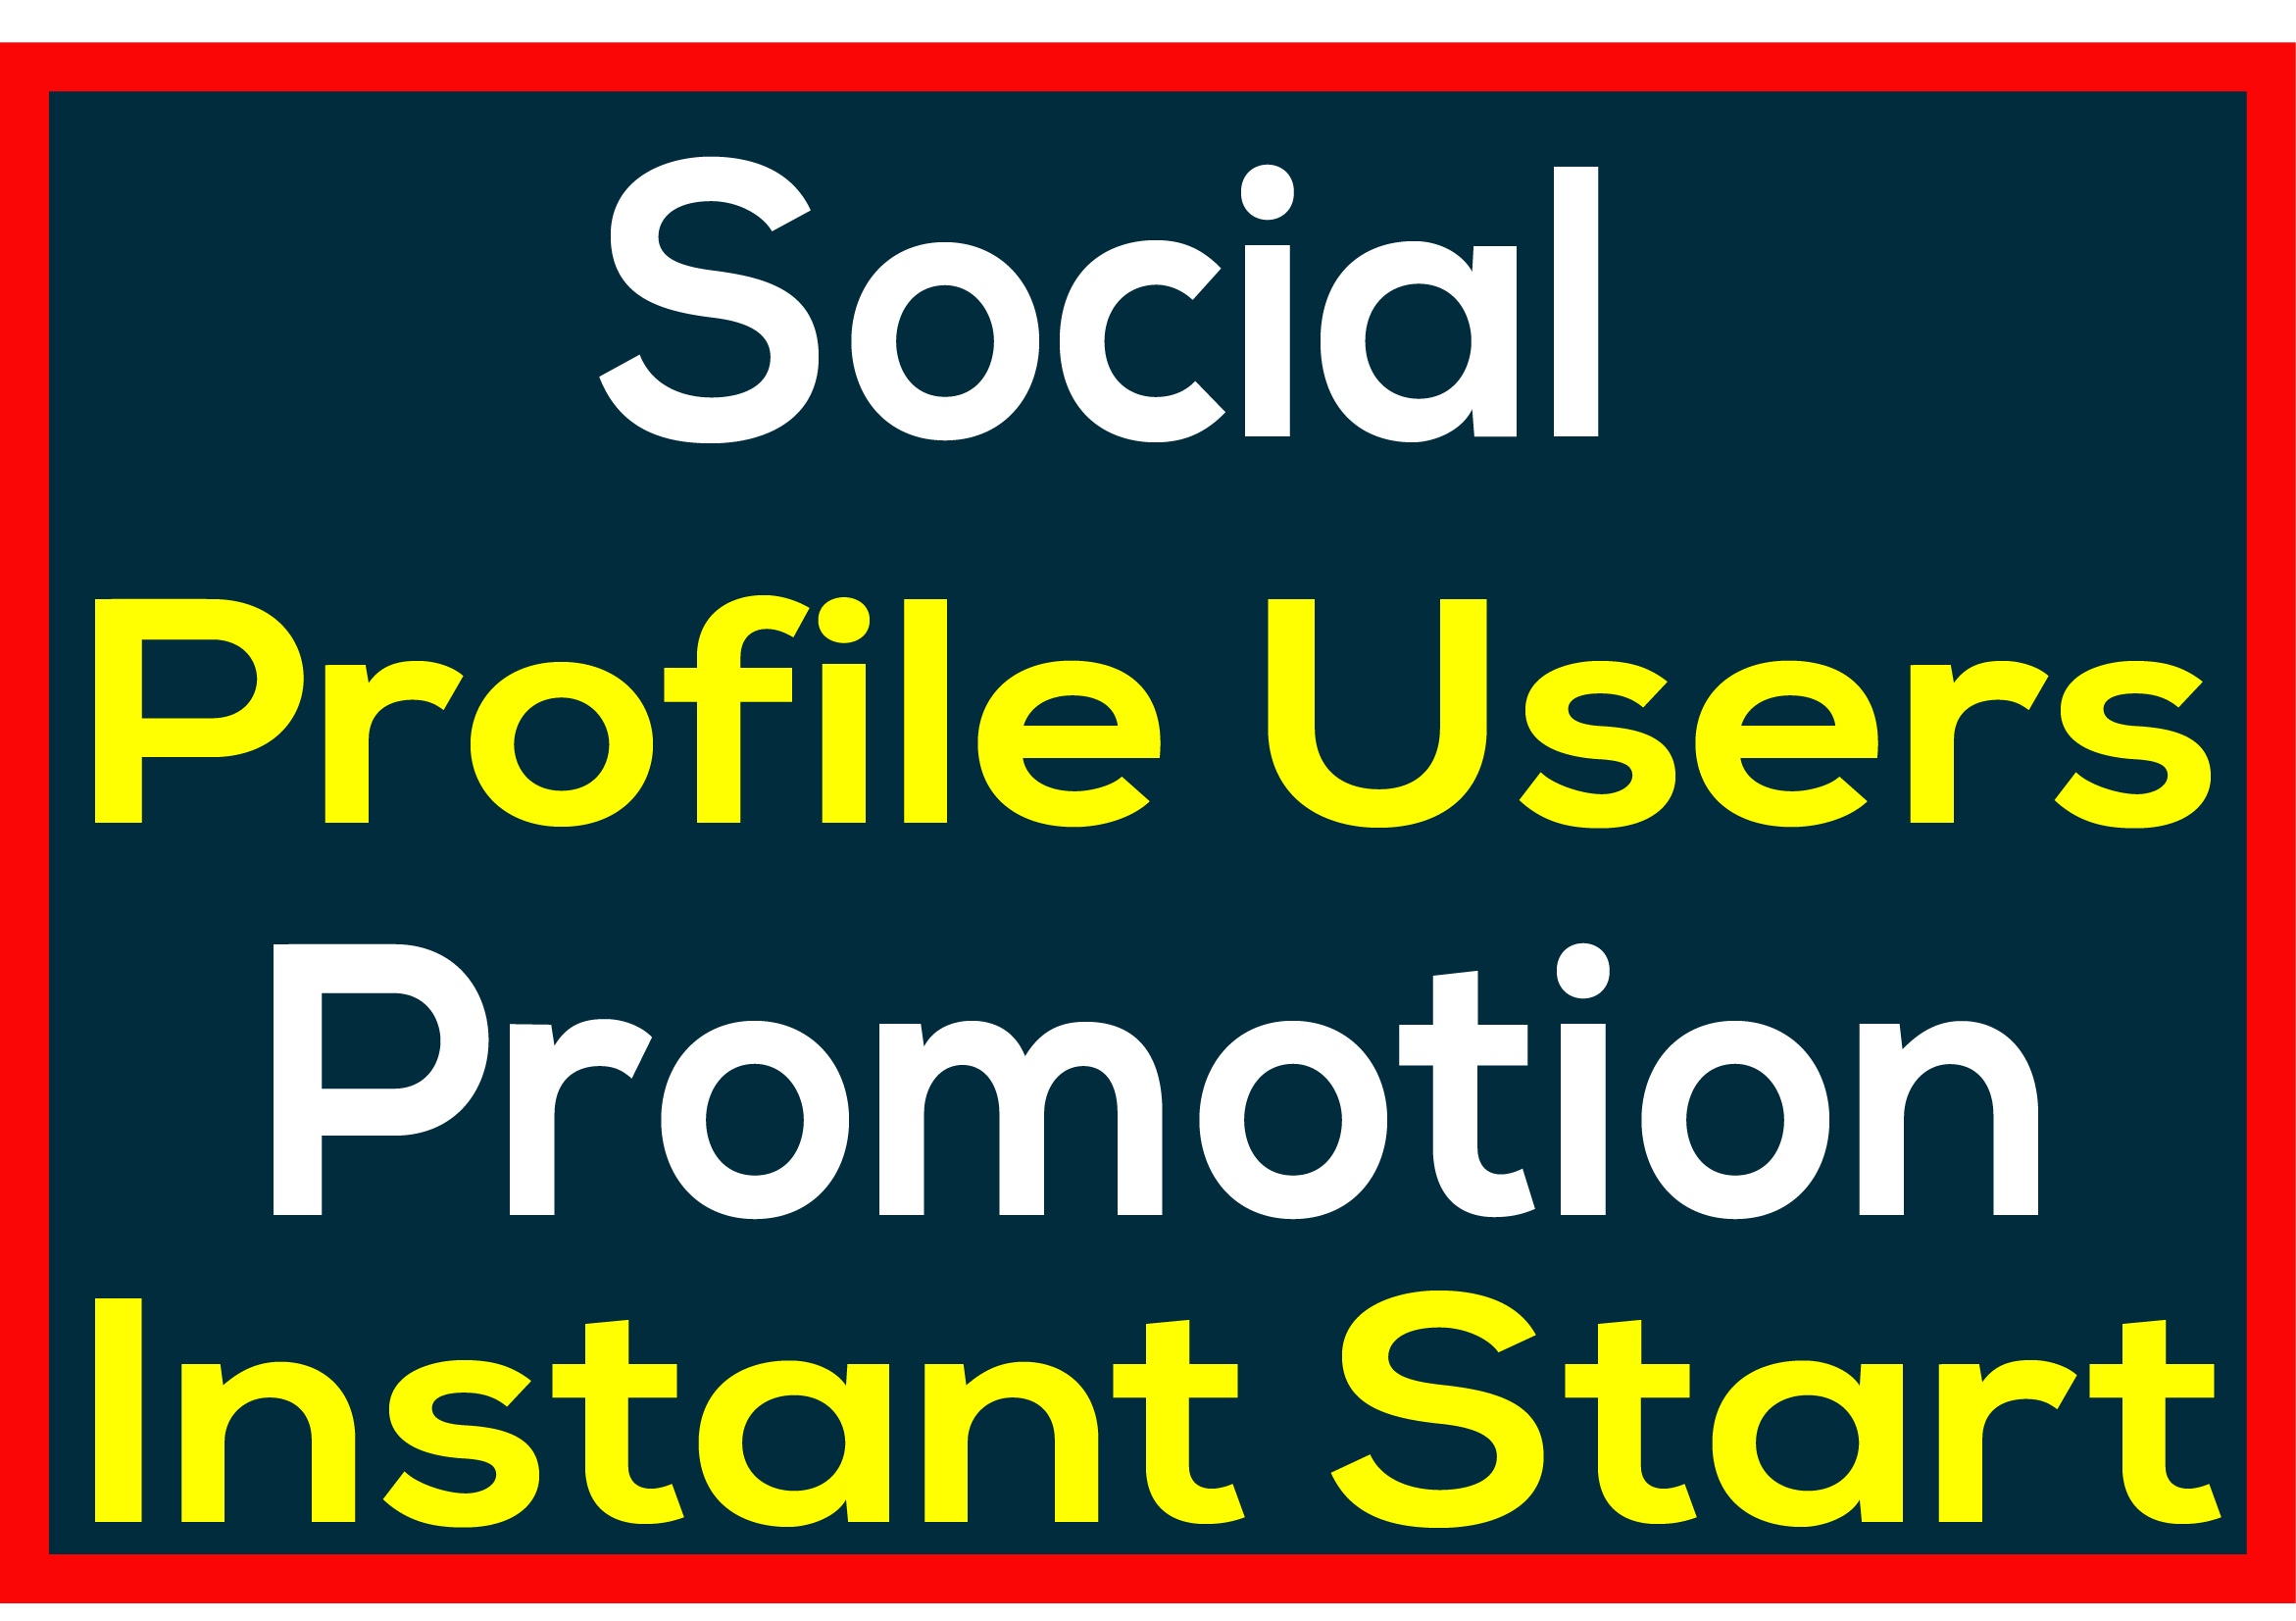 Social Media PROFILE REAL USERS PROMOTION High Quality